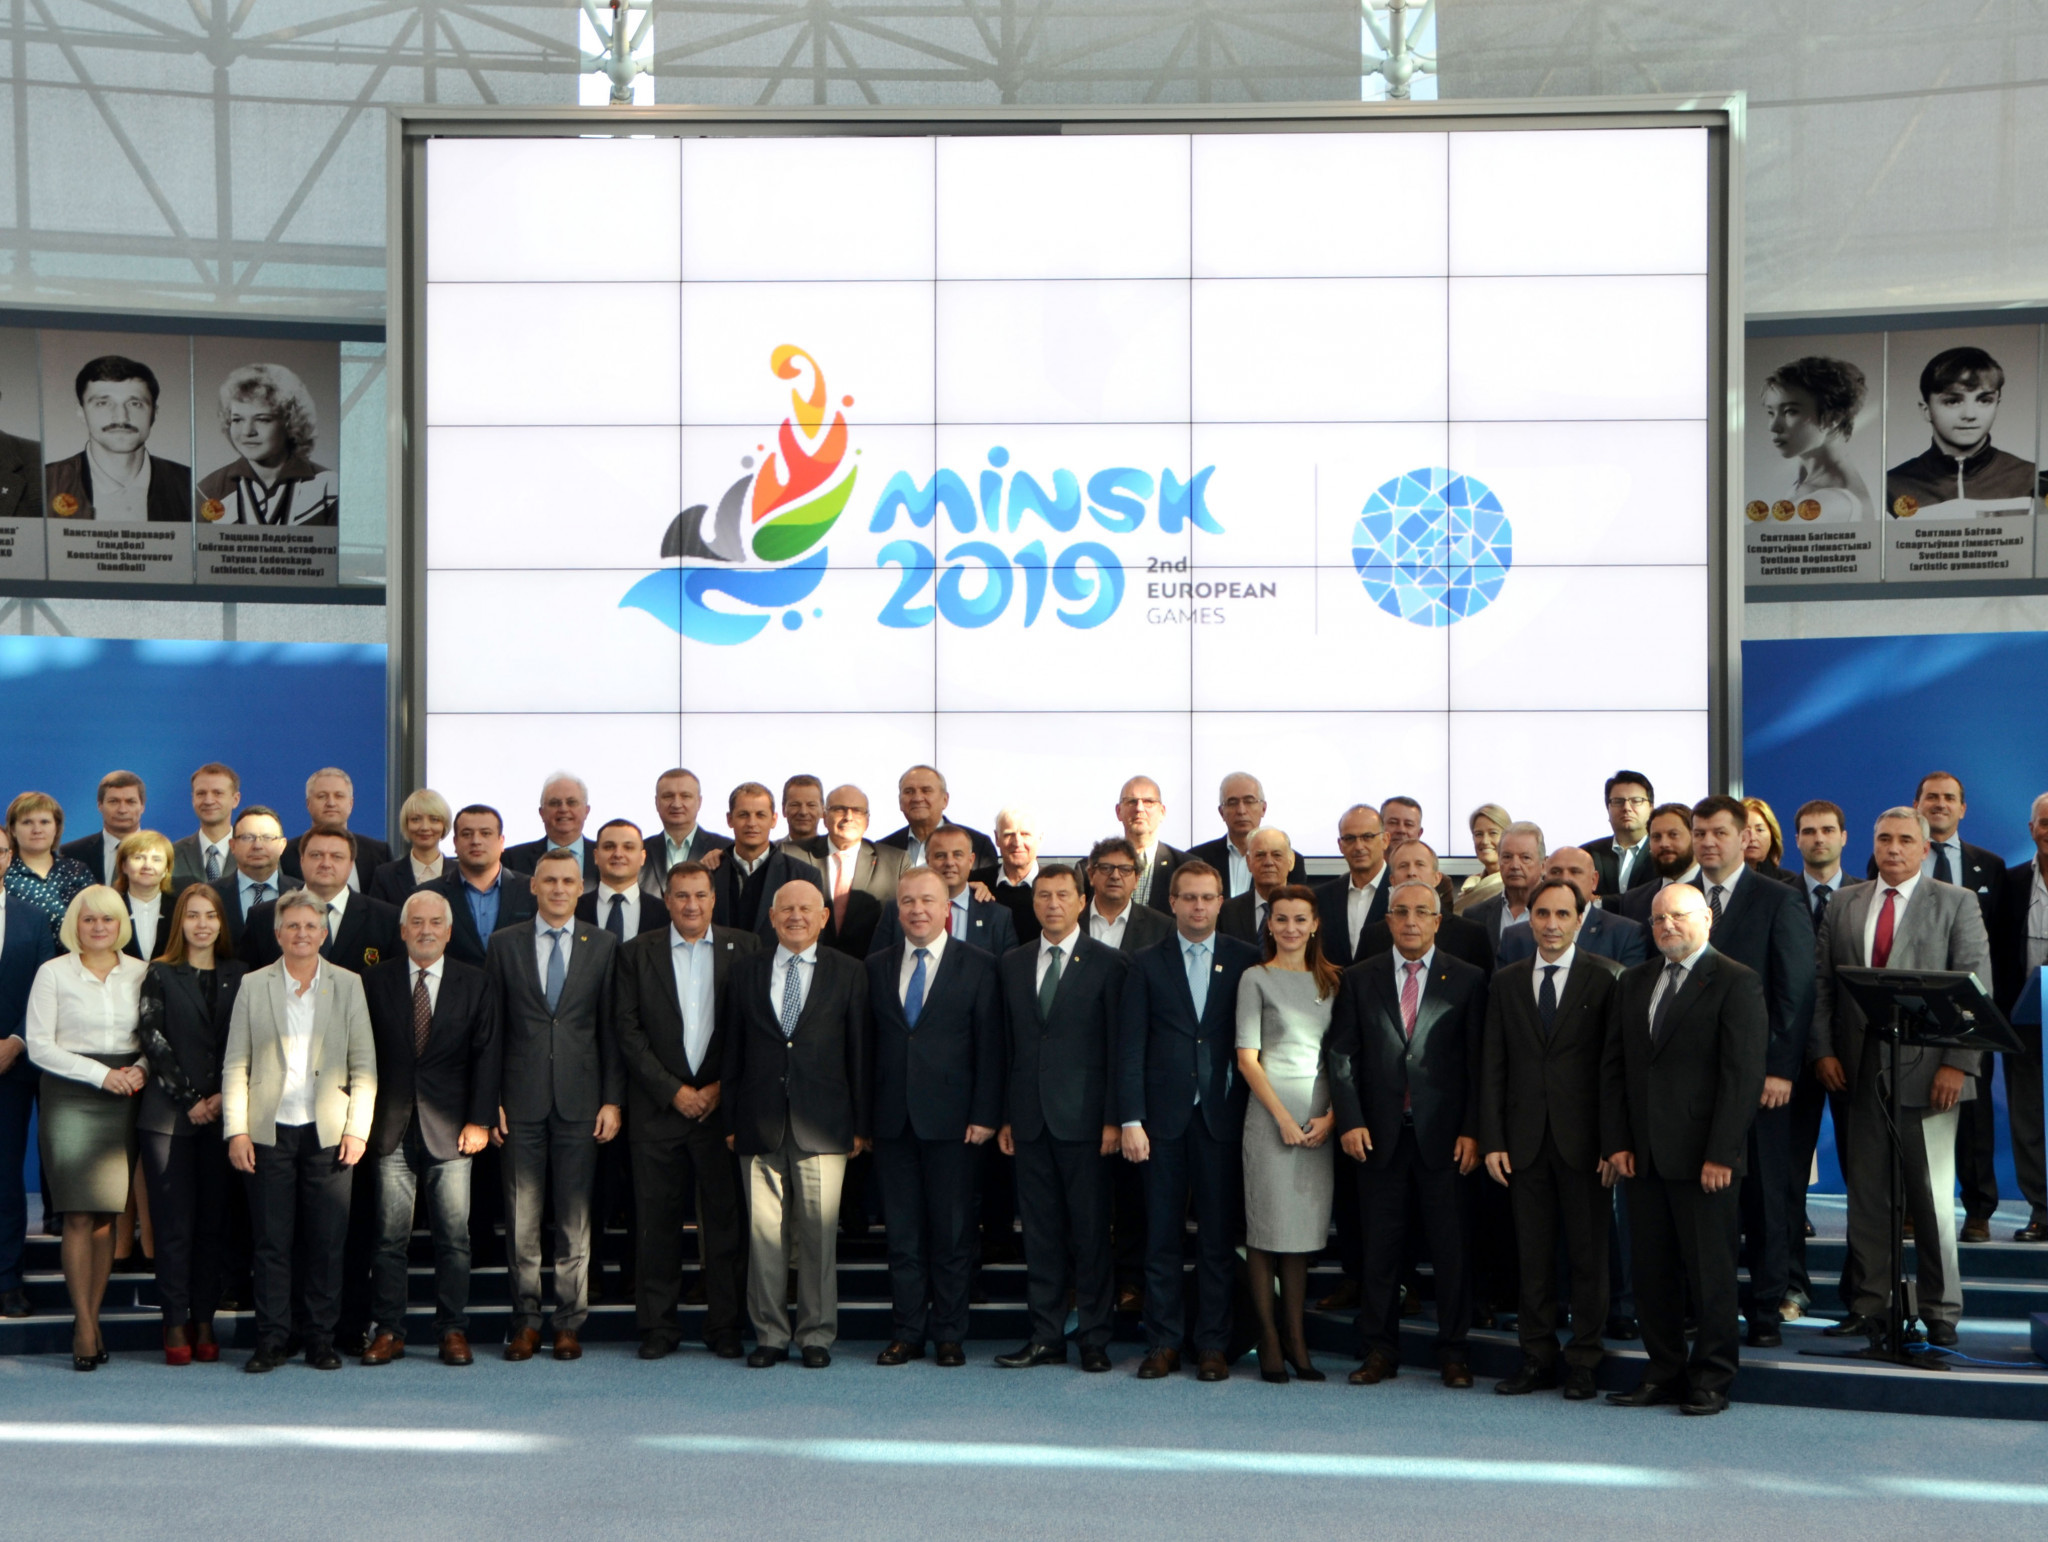 Minsk is due to host the 2019 European Games ©EOC